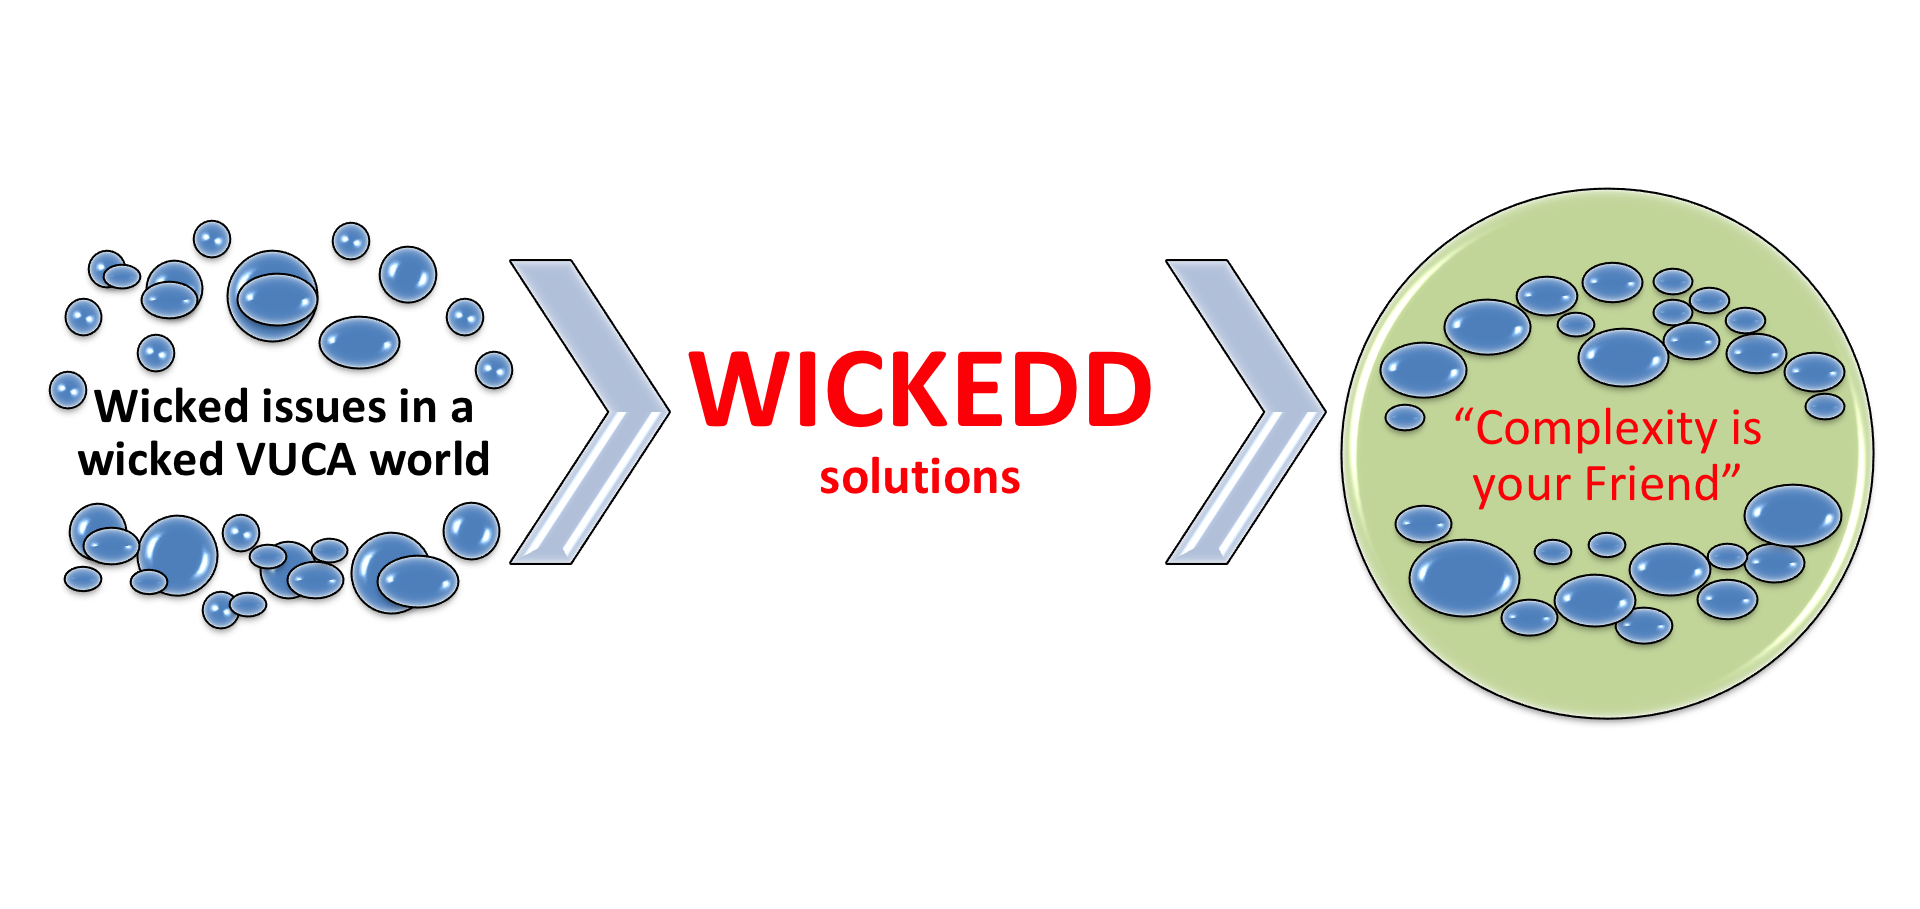 The Art of Coping with Complexity or Wicked issues need WICKEDD solutions